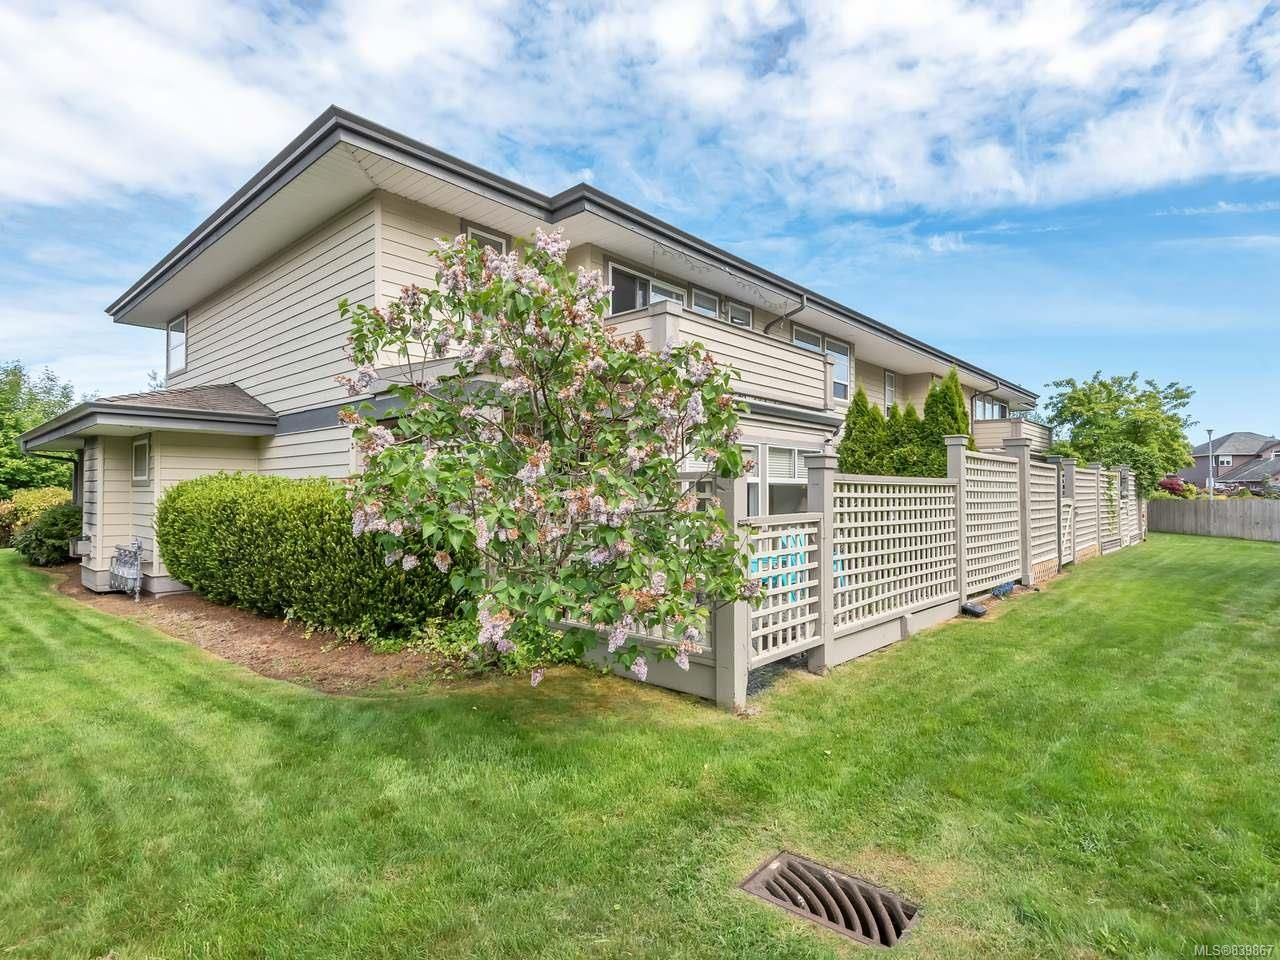 Photo 2: Photos: 21 2750 Denman St in CAMPBELL RIVER: CR Willow Point Row/Townhouse for sale (Campbell River)  : MLS®# 839867